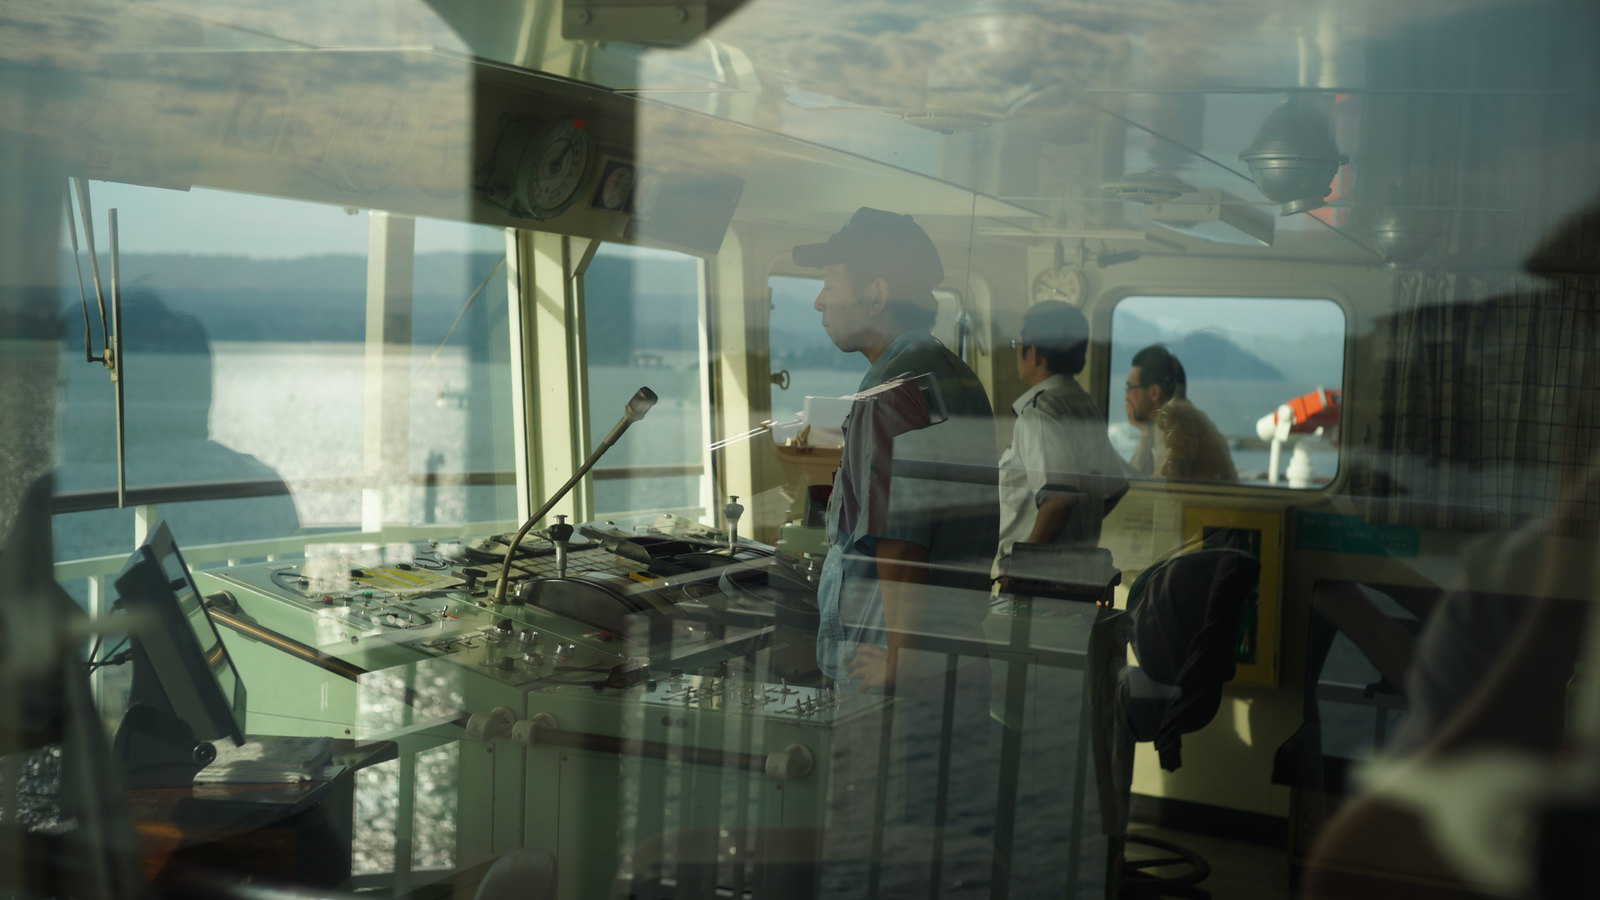 Reflections: Ferry #SonyA7 #Voigtlander40mm #foto #japan15 #Kagoshima